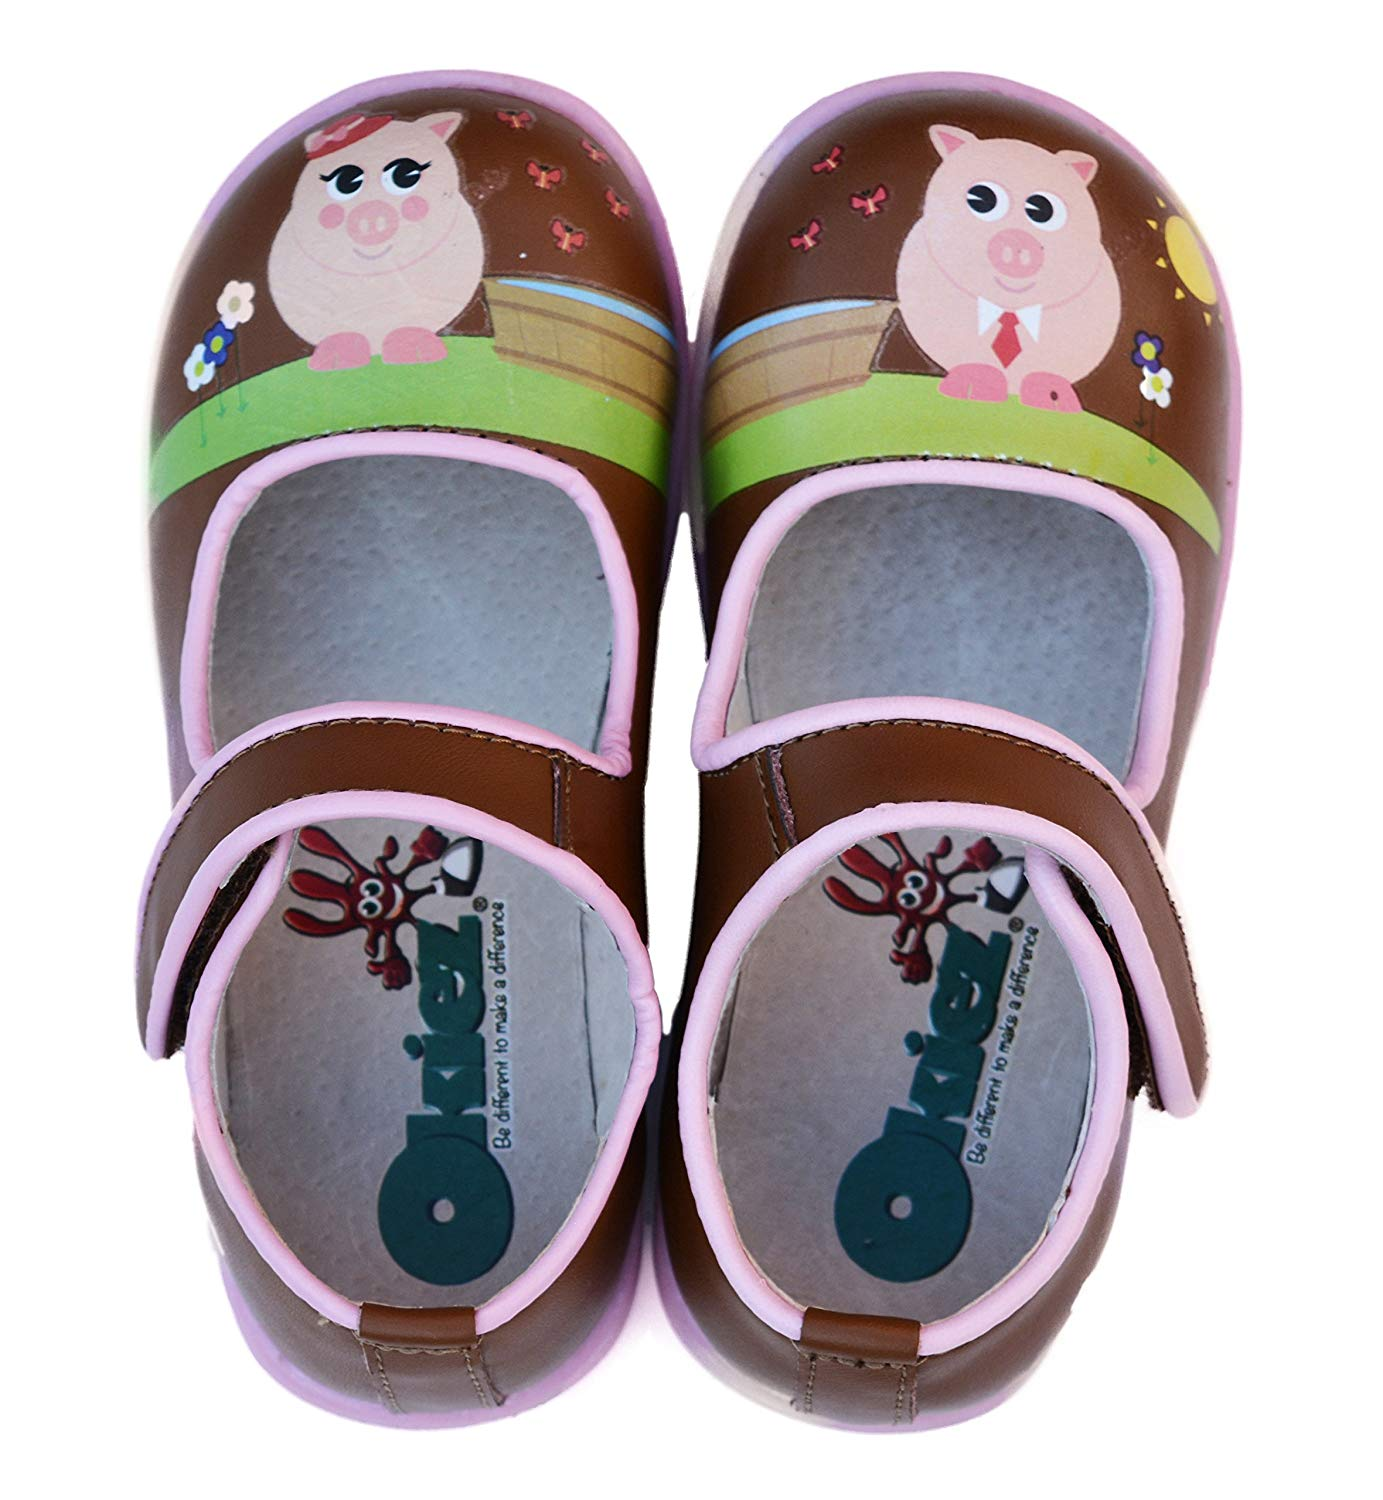 Okiez Brown & Pink Piggies Mary Janes Leather Shoes